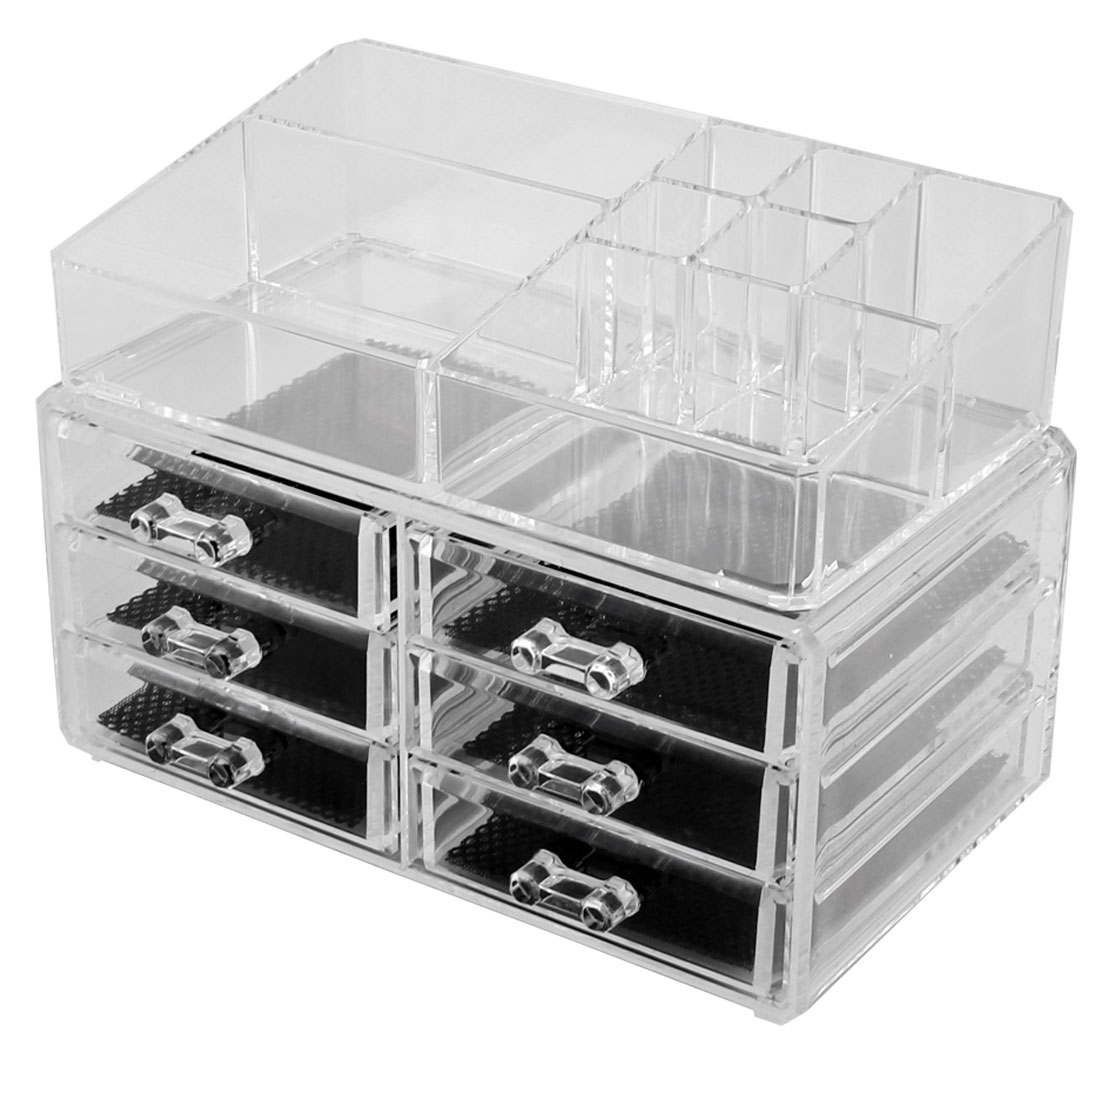 Household Acrylic Multichamber Transparent Jewelry Makeup Holder Organizer Set 2 in 1